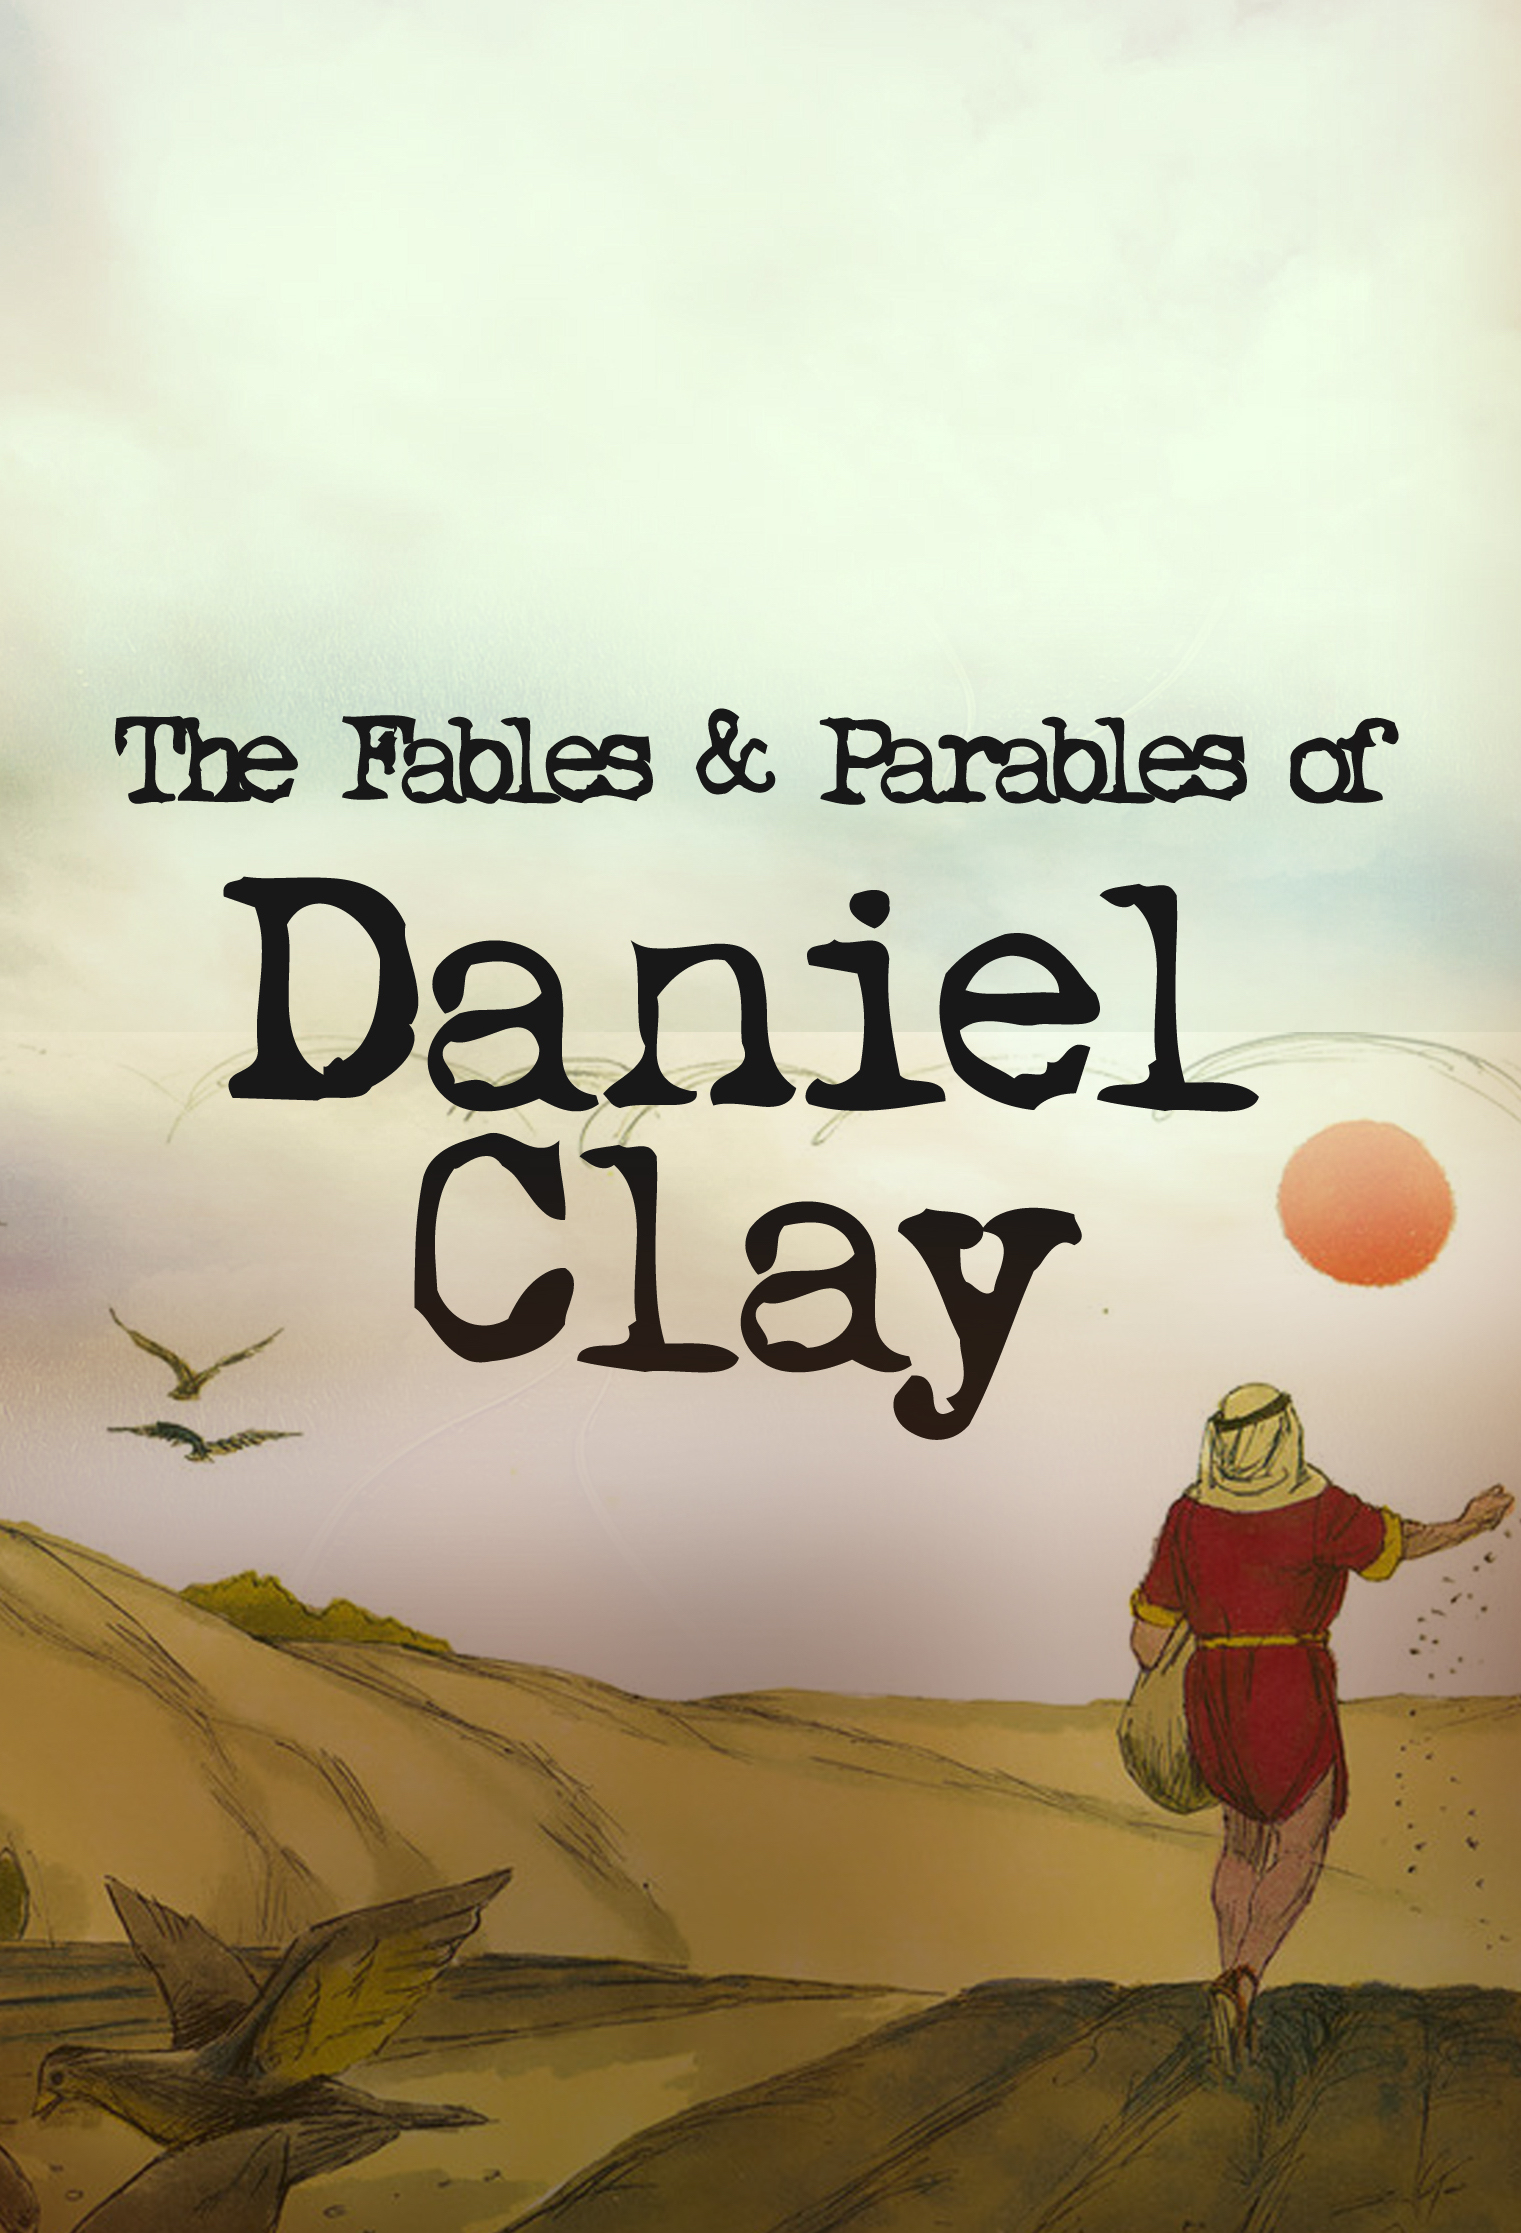 The Parables and Fables of Daniel Clay - Cropped